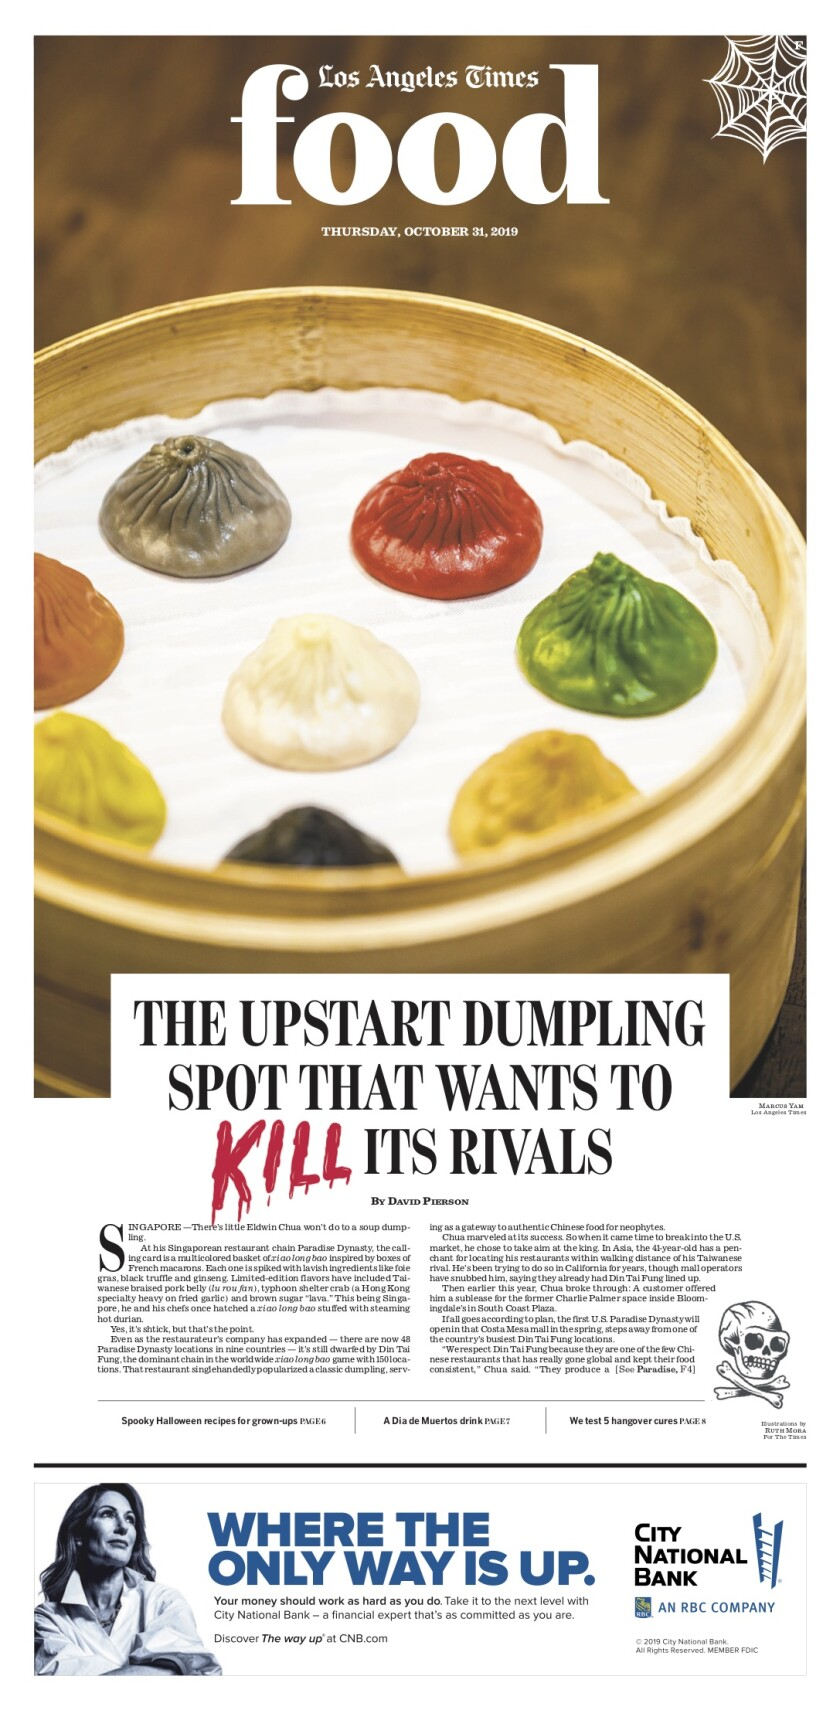 Los Angeles Times Food cover, October 31, 2019